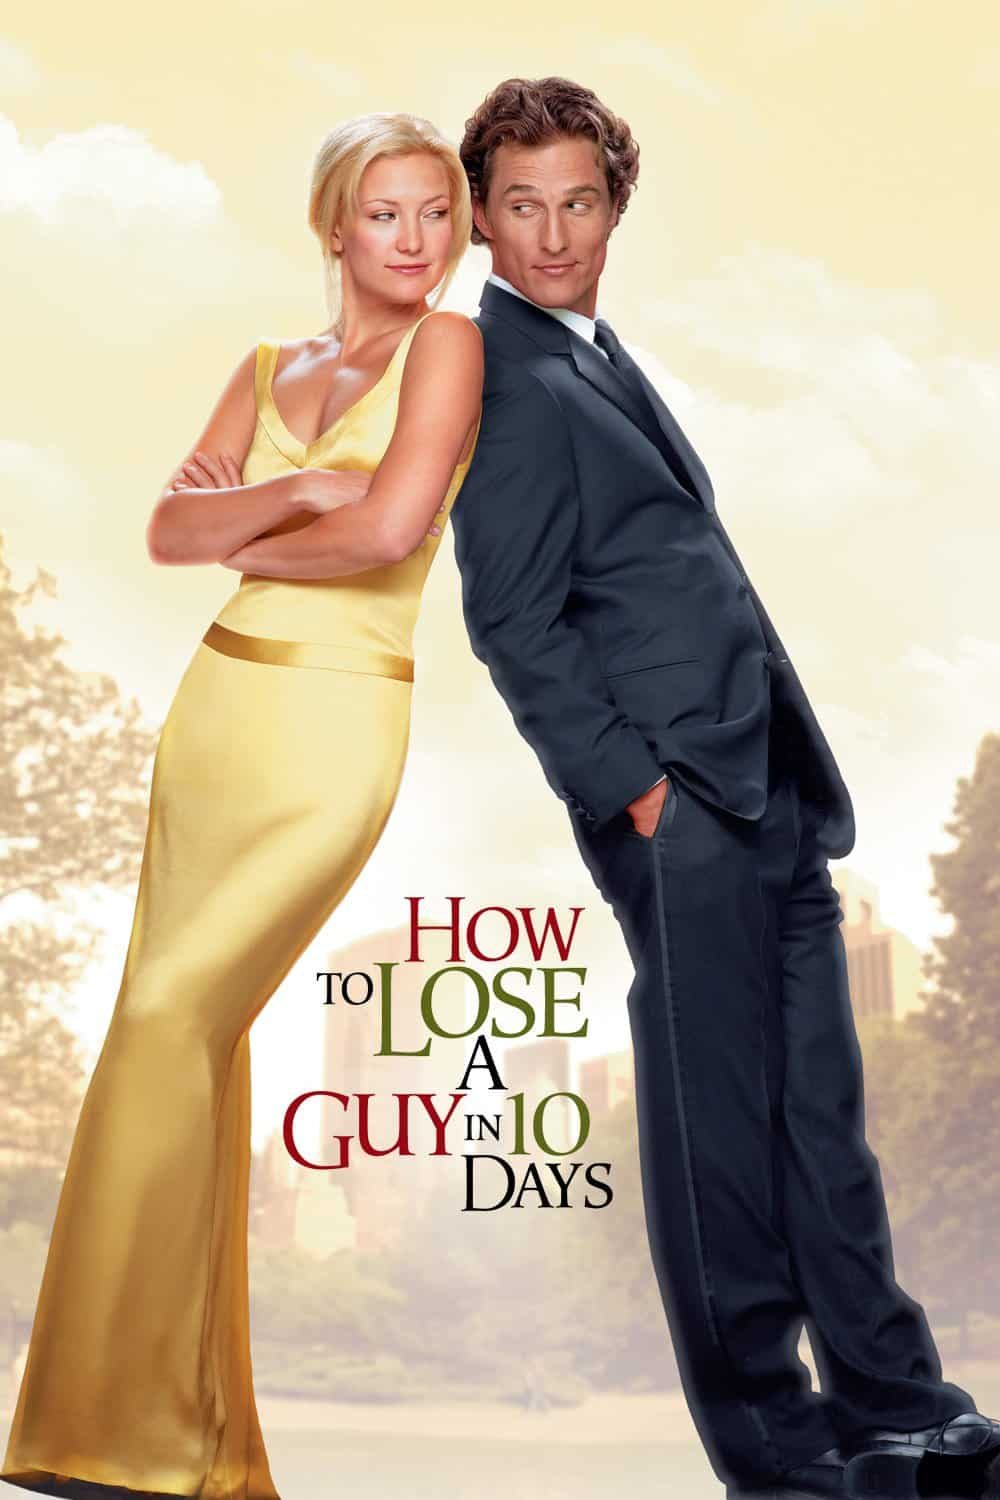 How to Lose a Guy in 10 Days, 2003